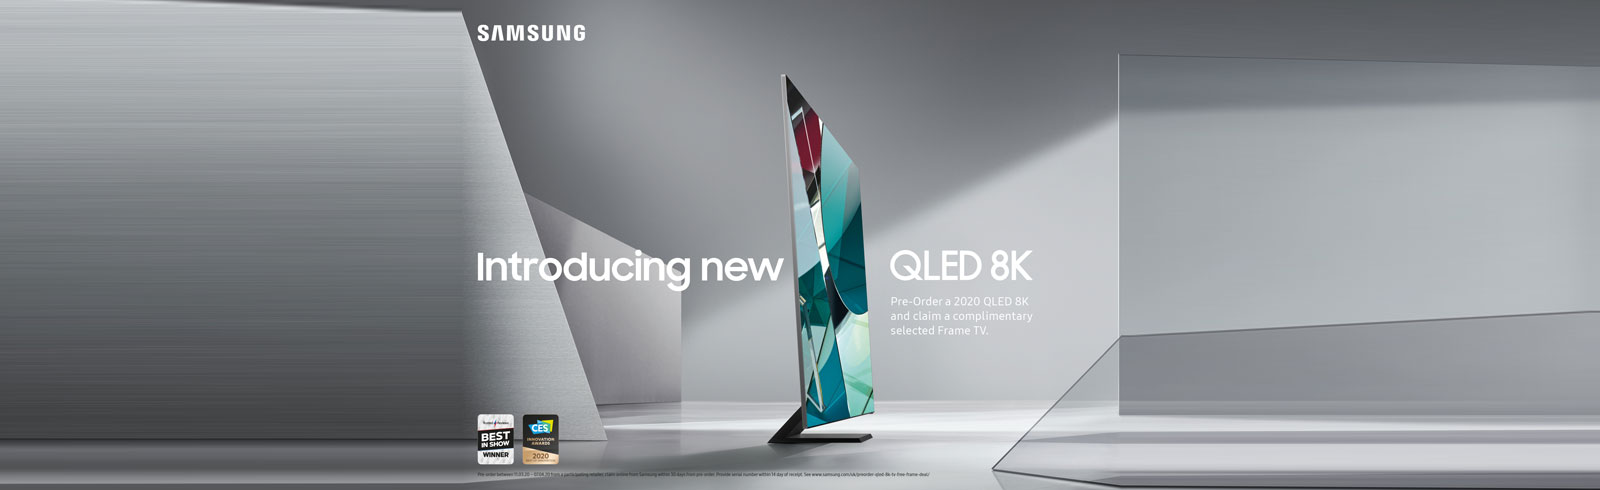 Samsung UK offers a free Frame TV when pre-ordering a 2020 QLED 8K TV